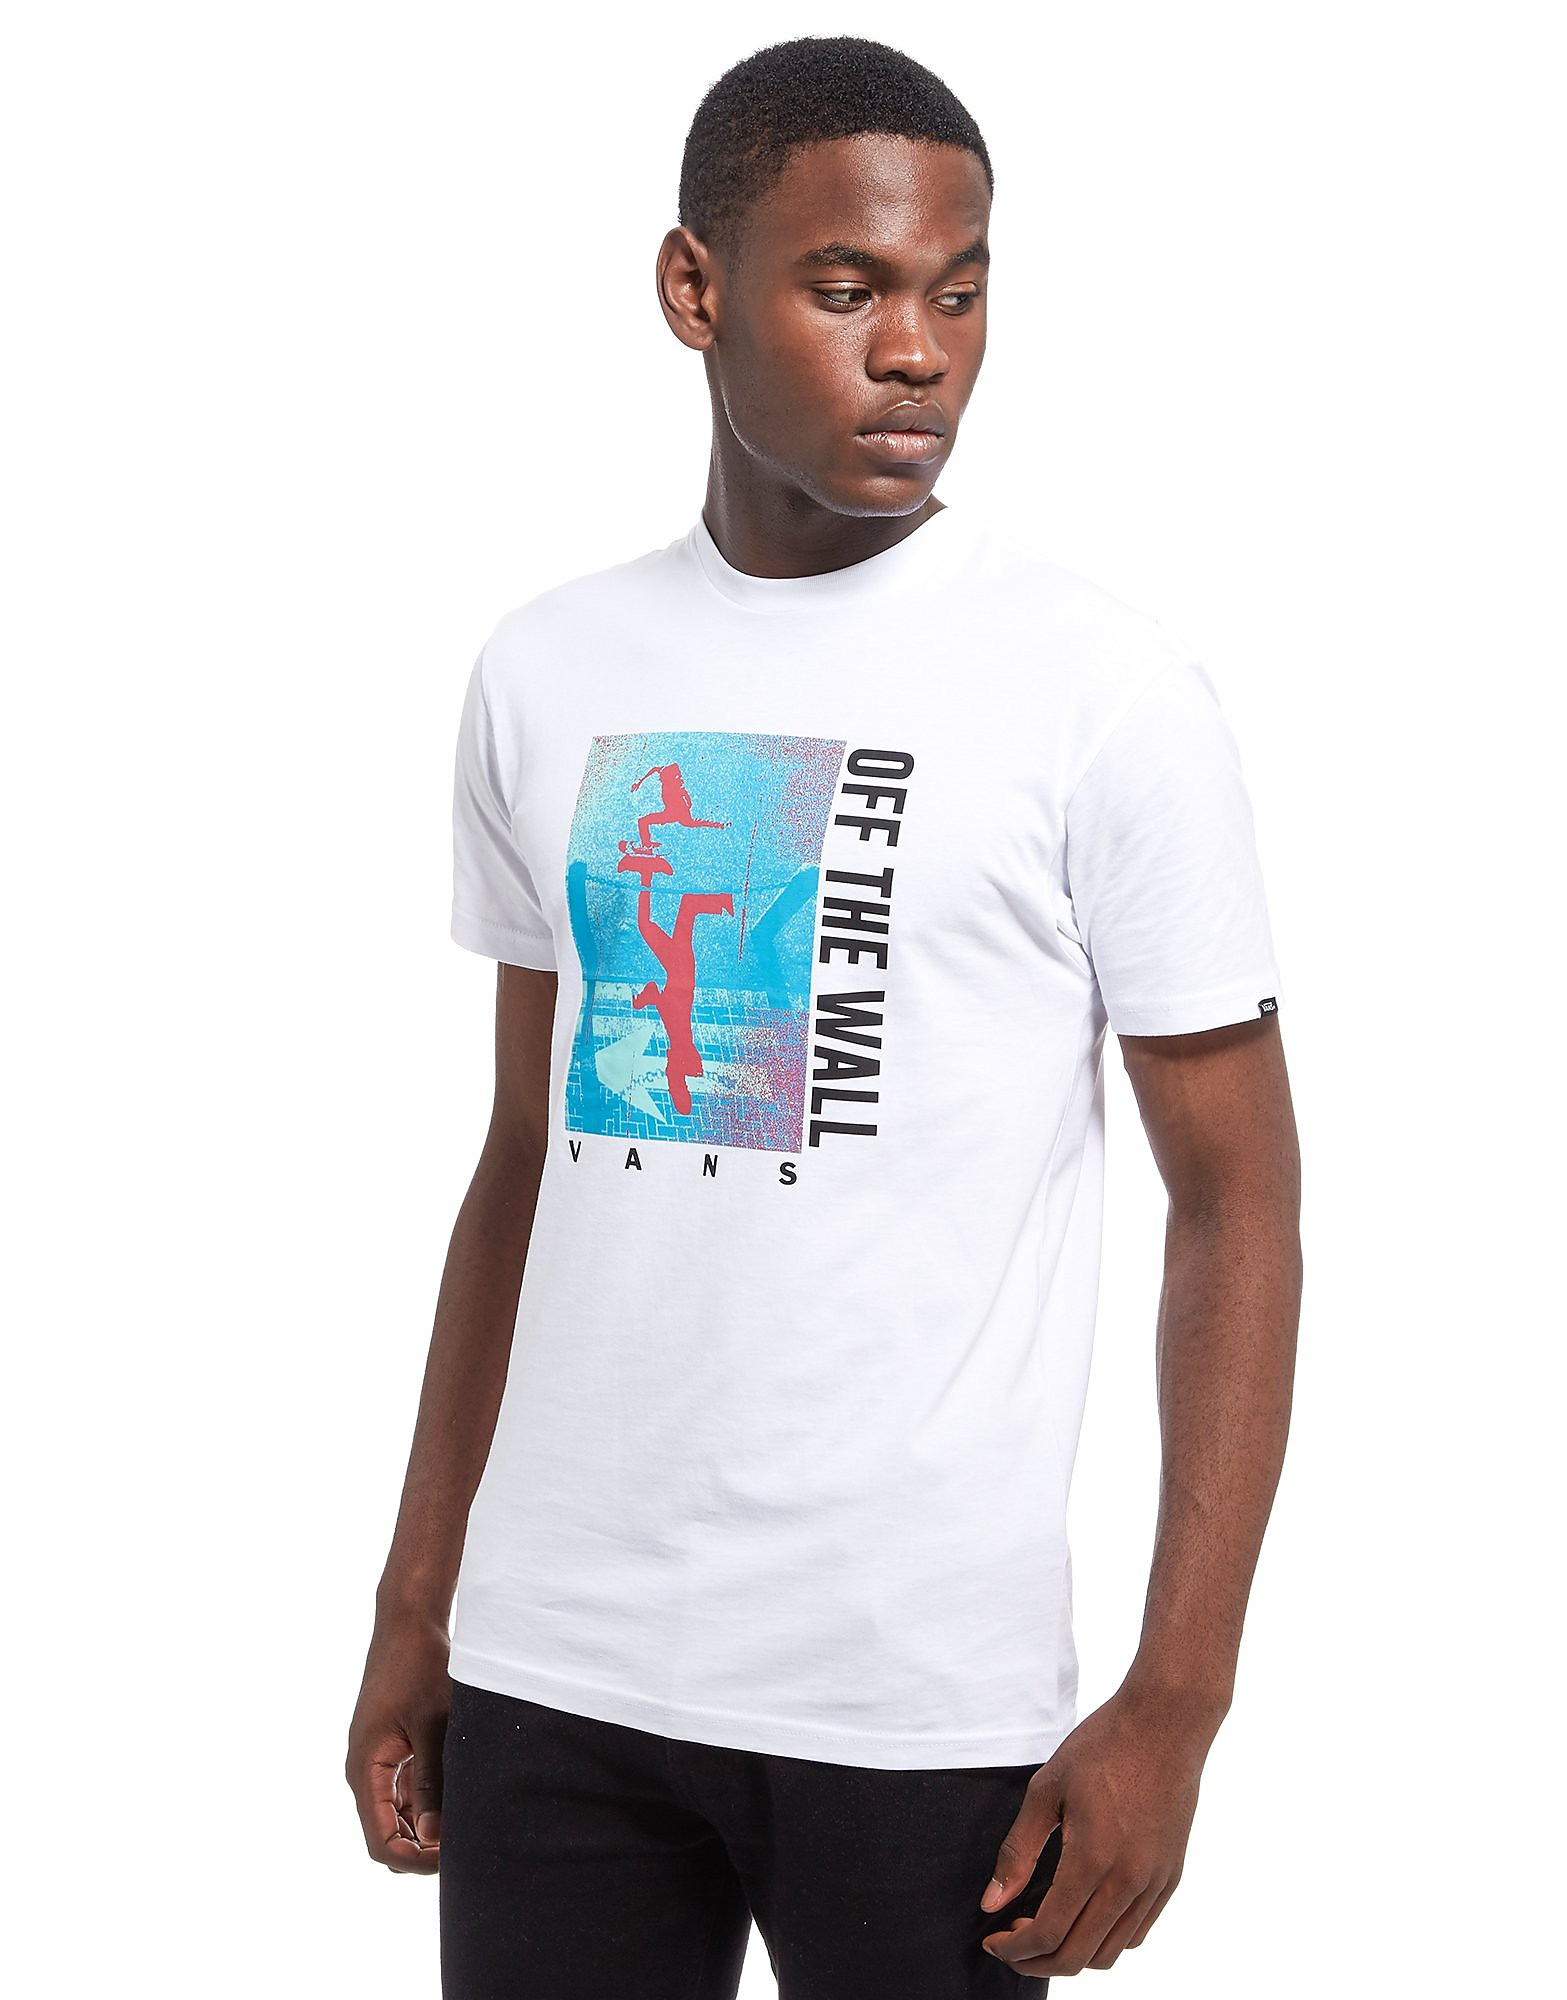 Vans Heat Map T-Shirt